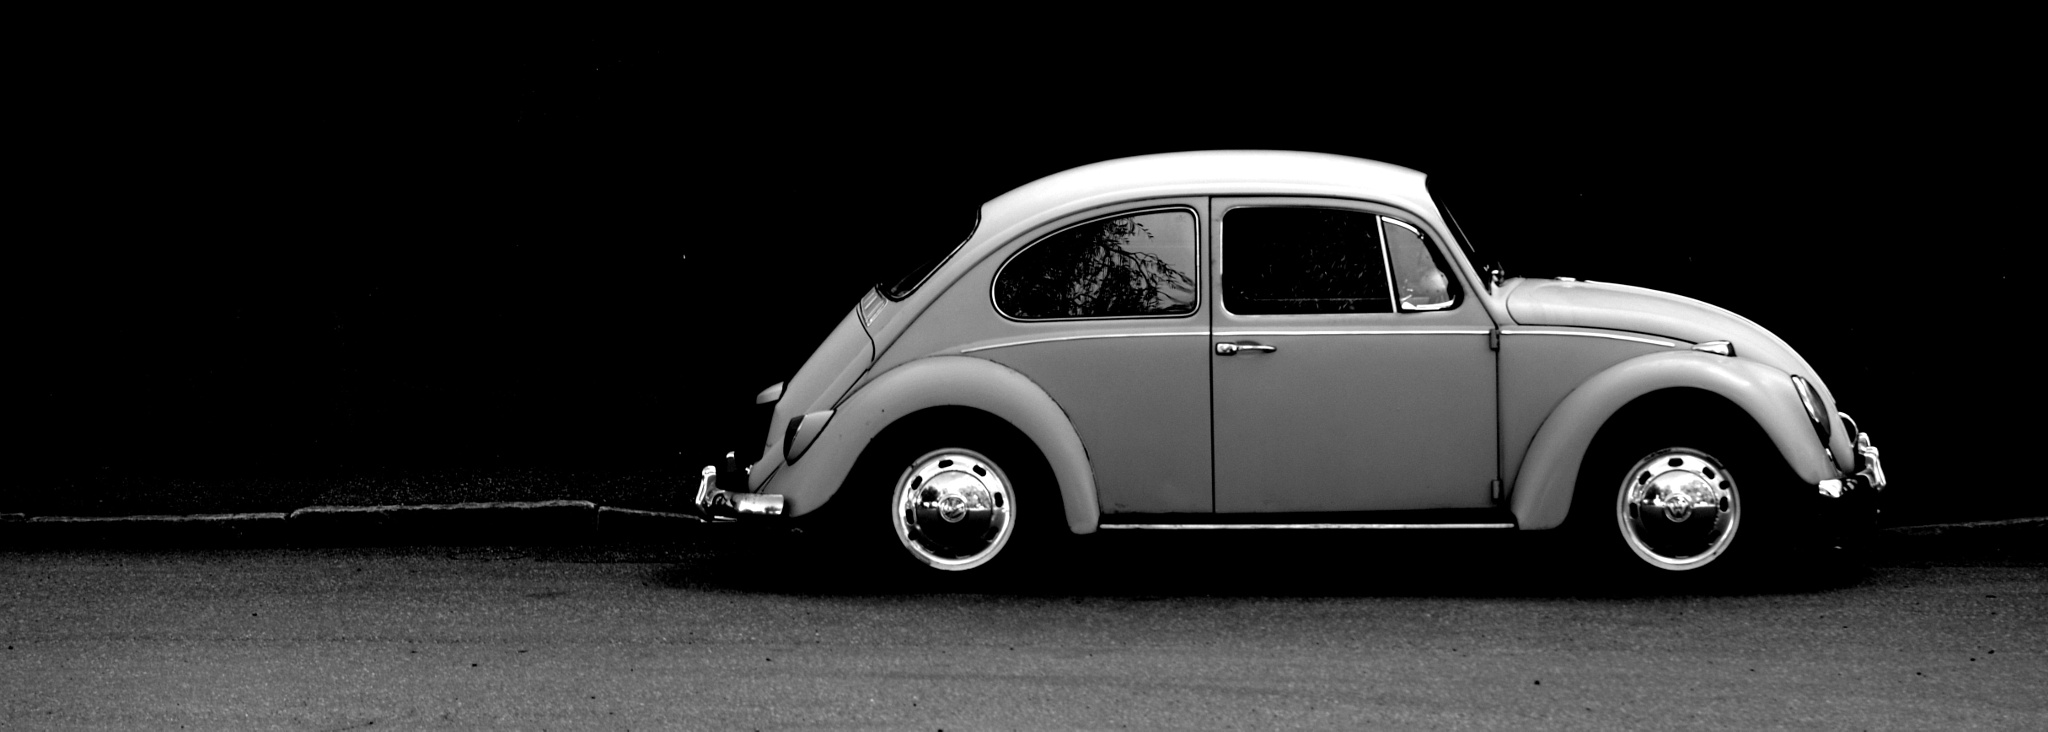 The Beatle by Stefan Evensson Photography